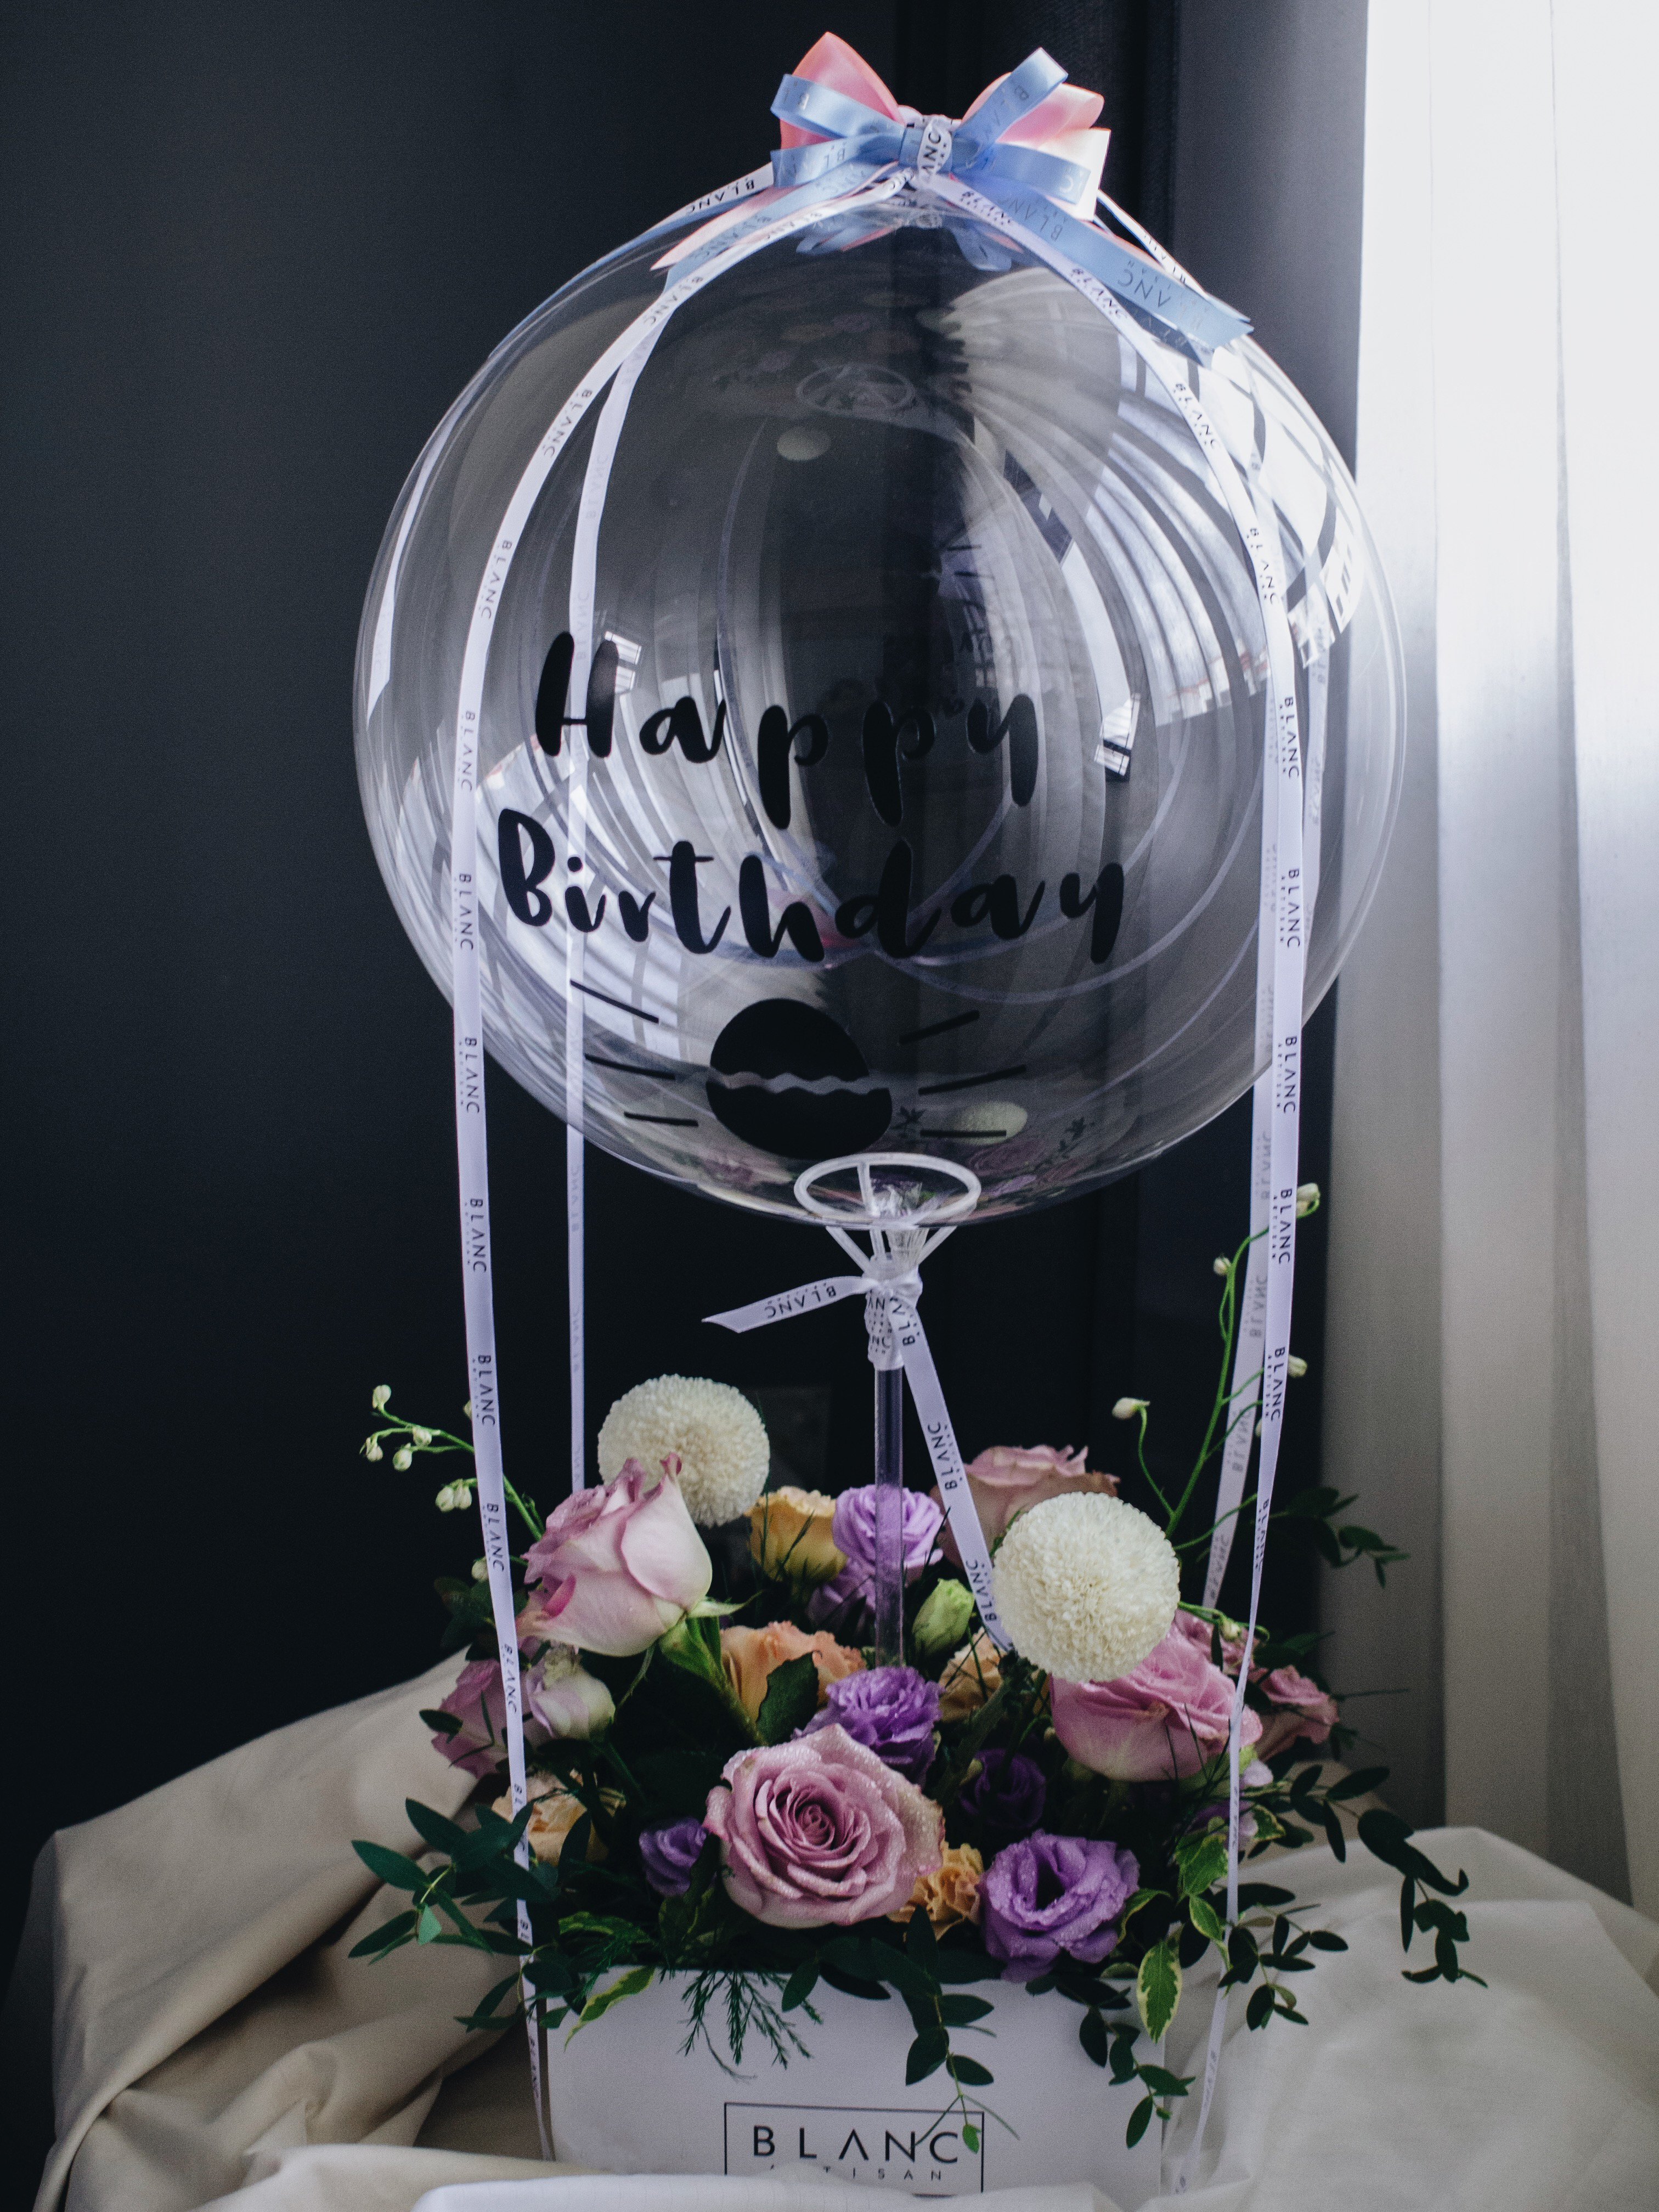 Hot Air Balloon Flower Box Delivery Singapore 24 Hours Online Flower